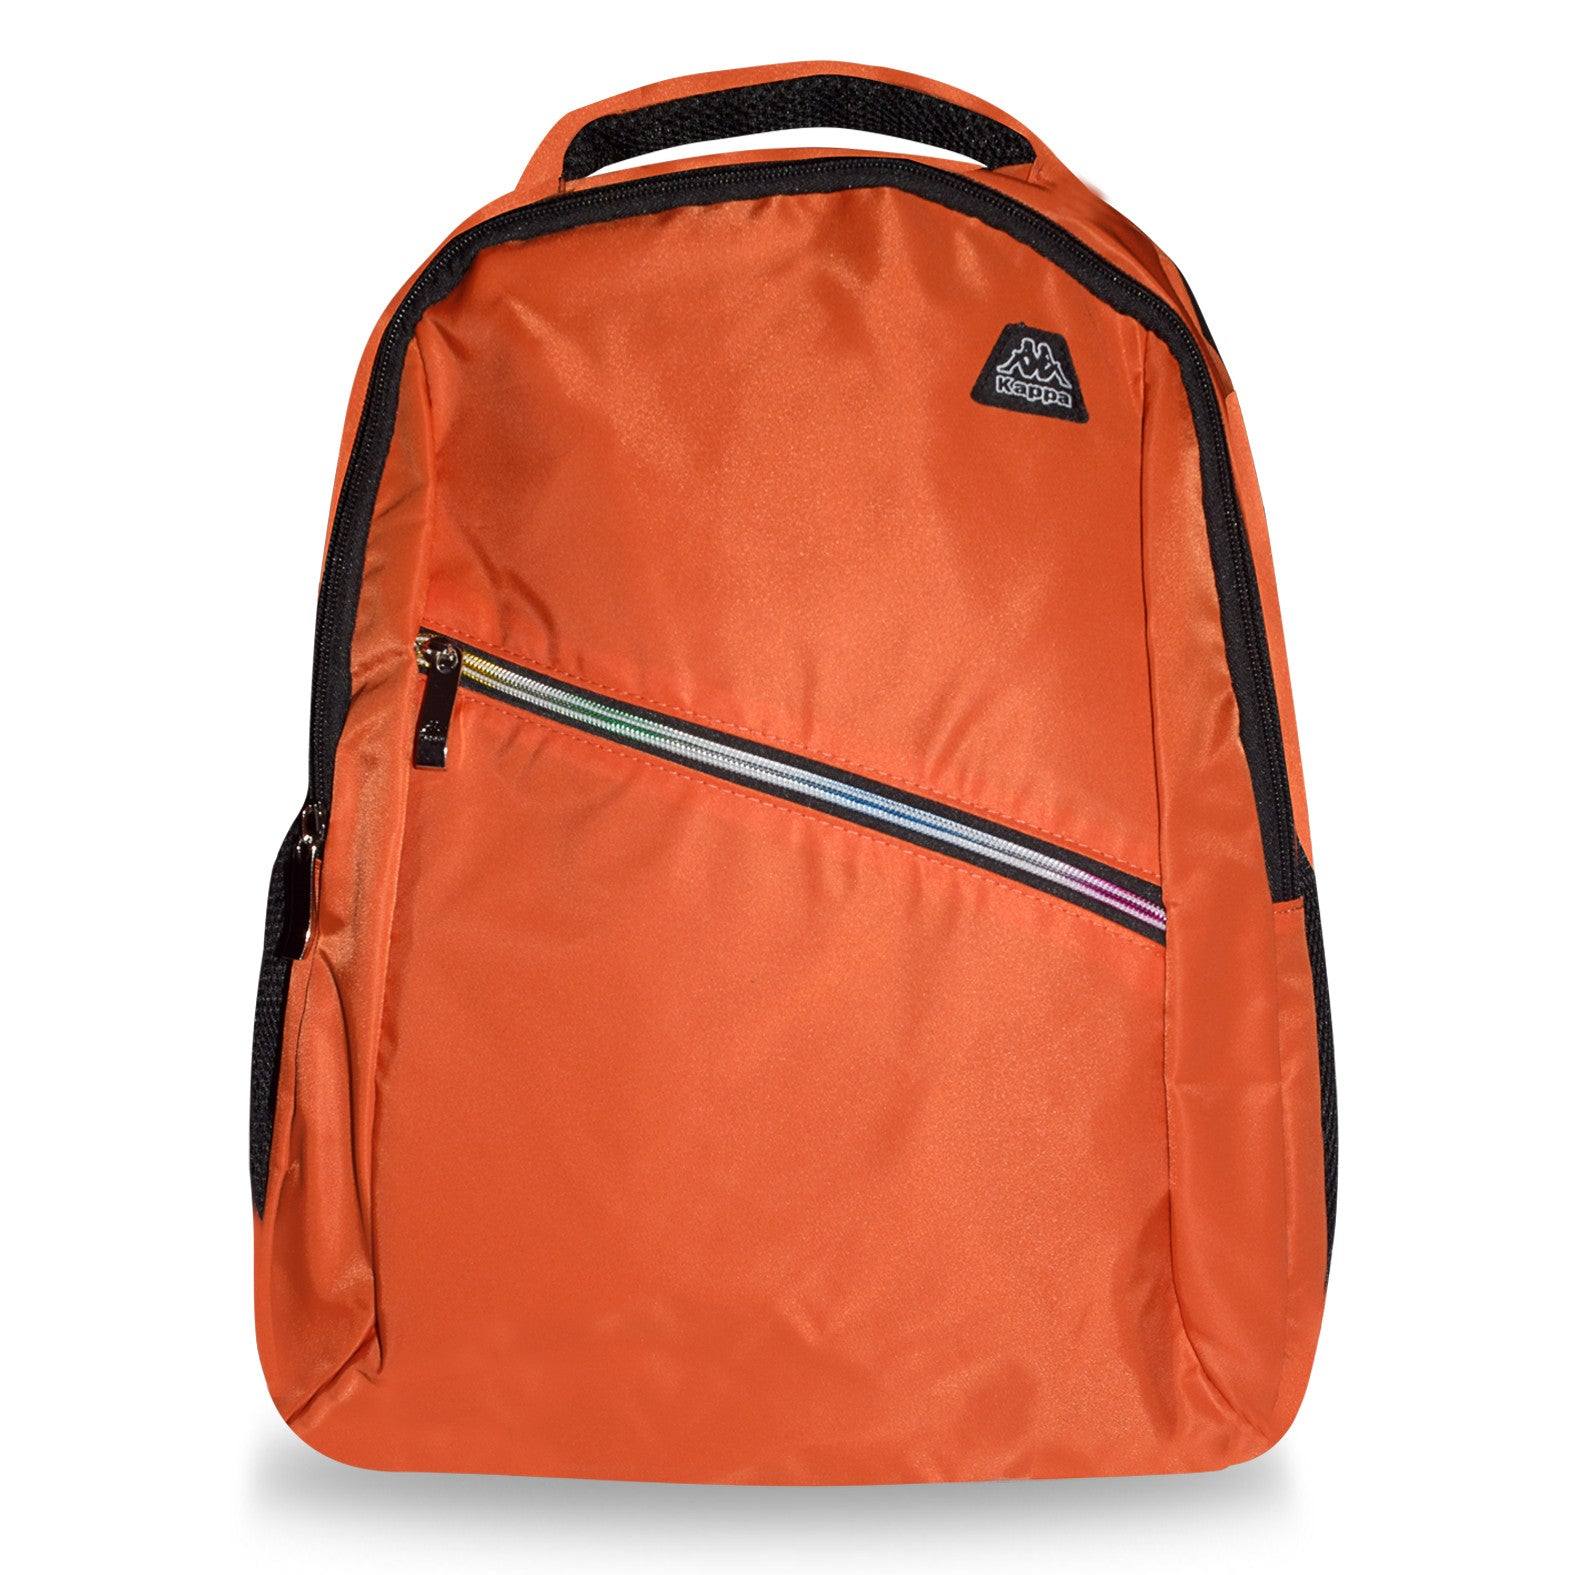 Backpack Lifestyle Naranja PLD007-1